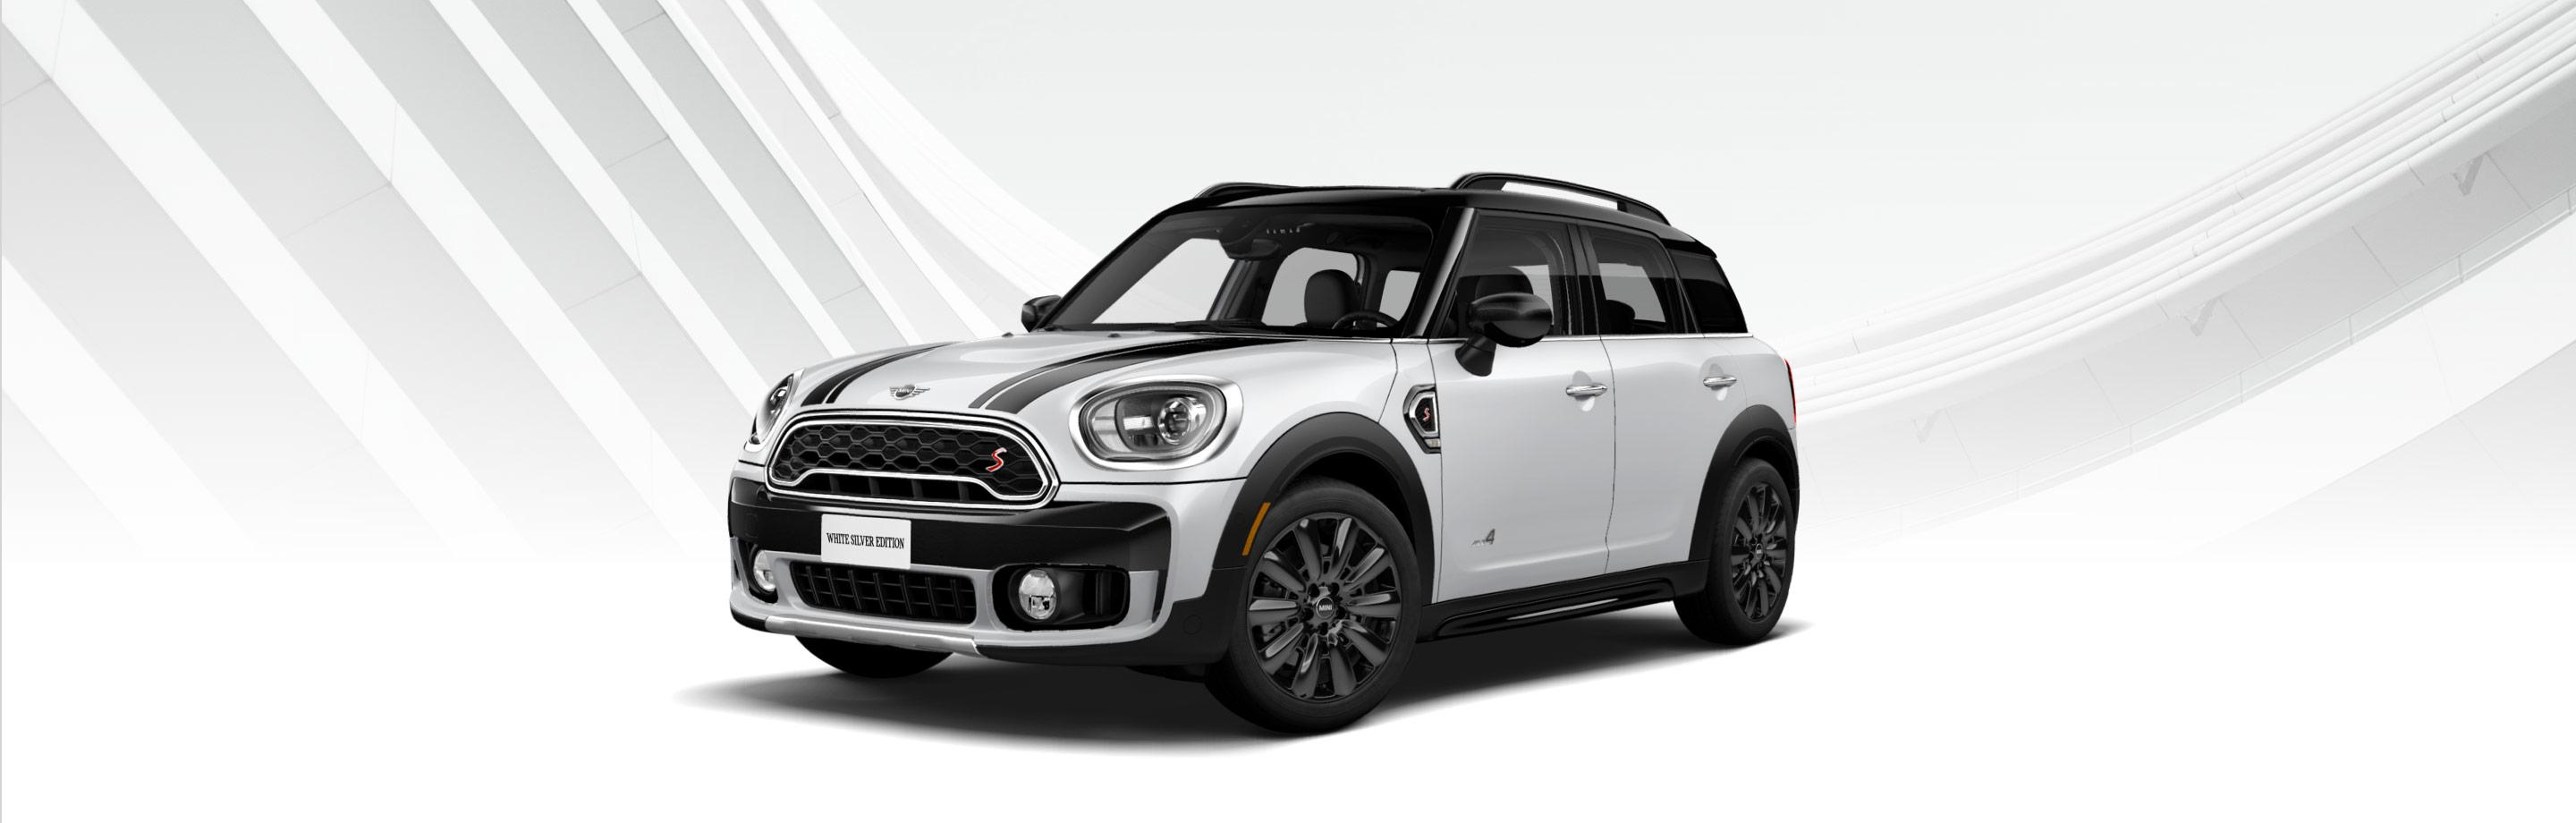 White Silver Countryman front side view